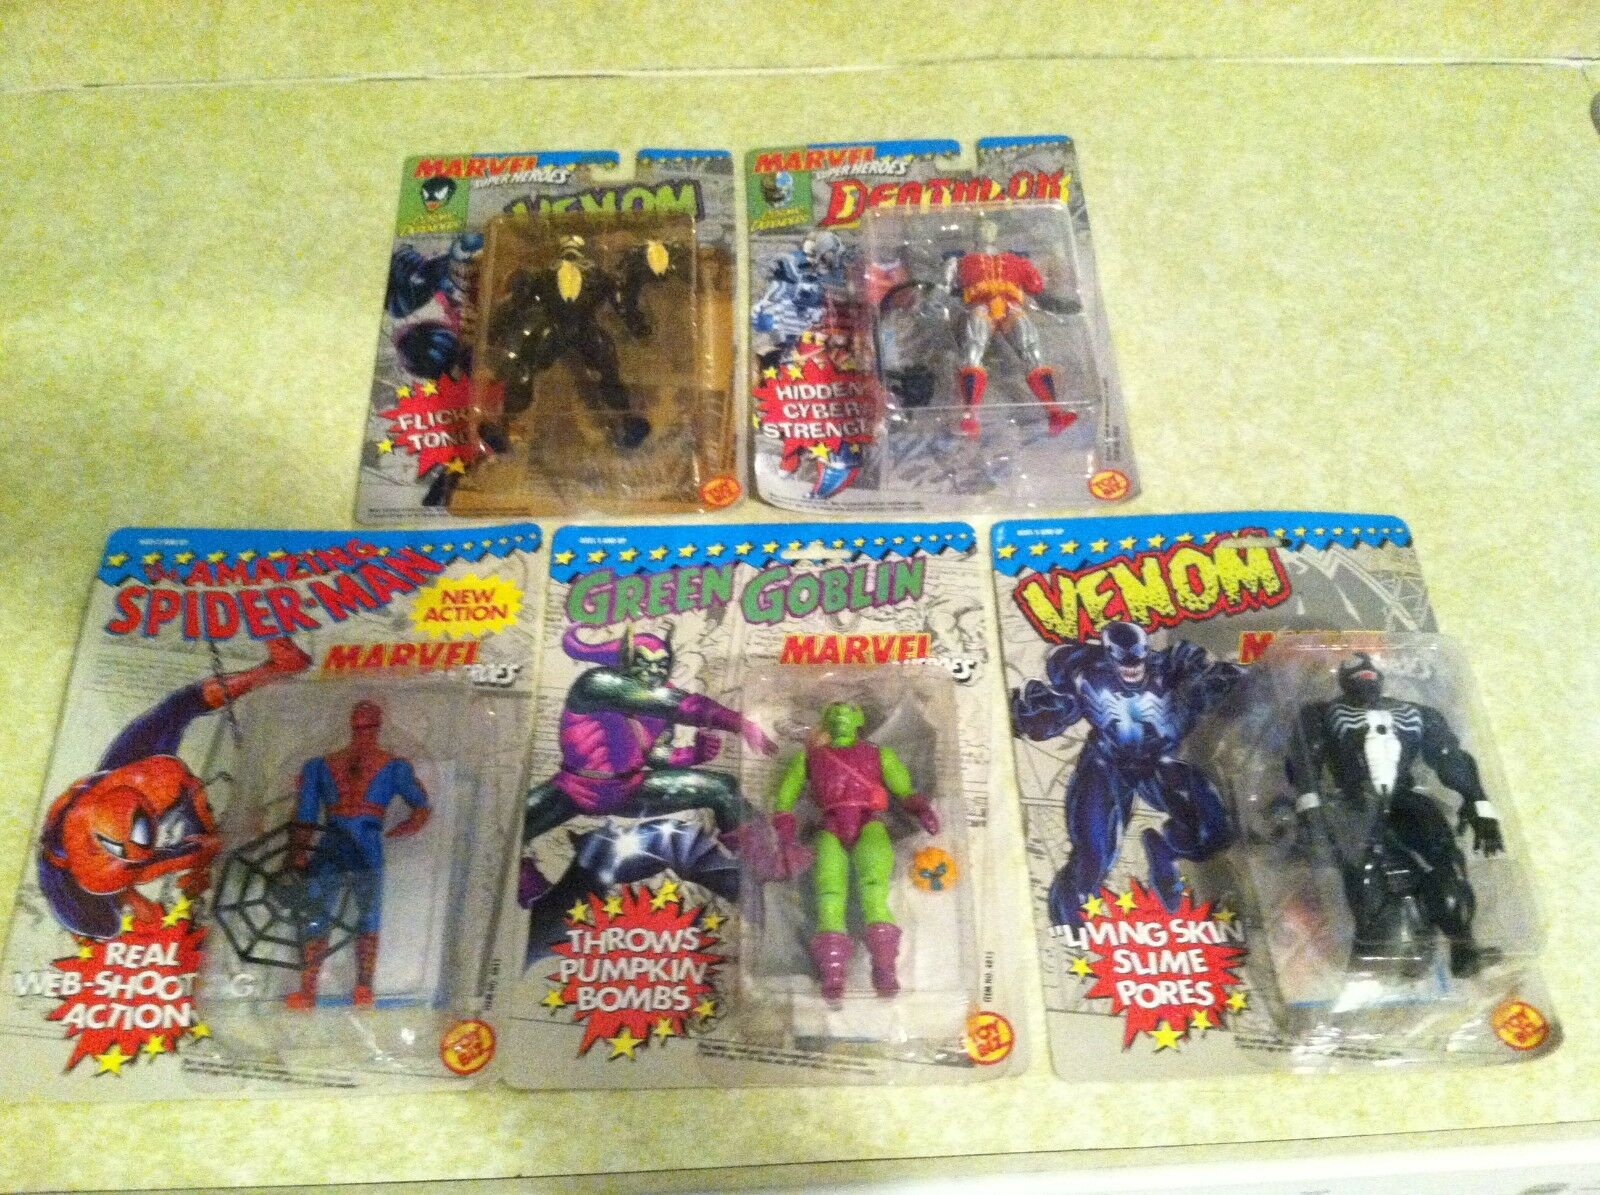 TOY BIZ new MARVEL heros (set of 5) spiderman green goblin venom deathlok x men